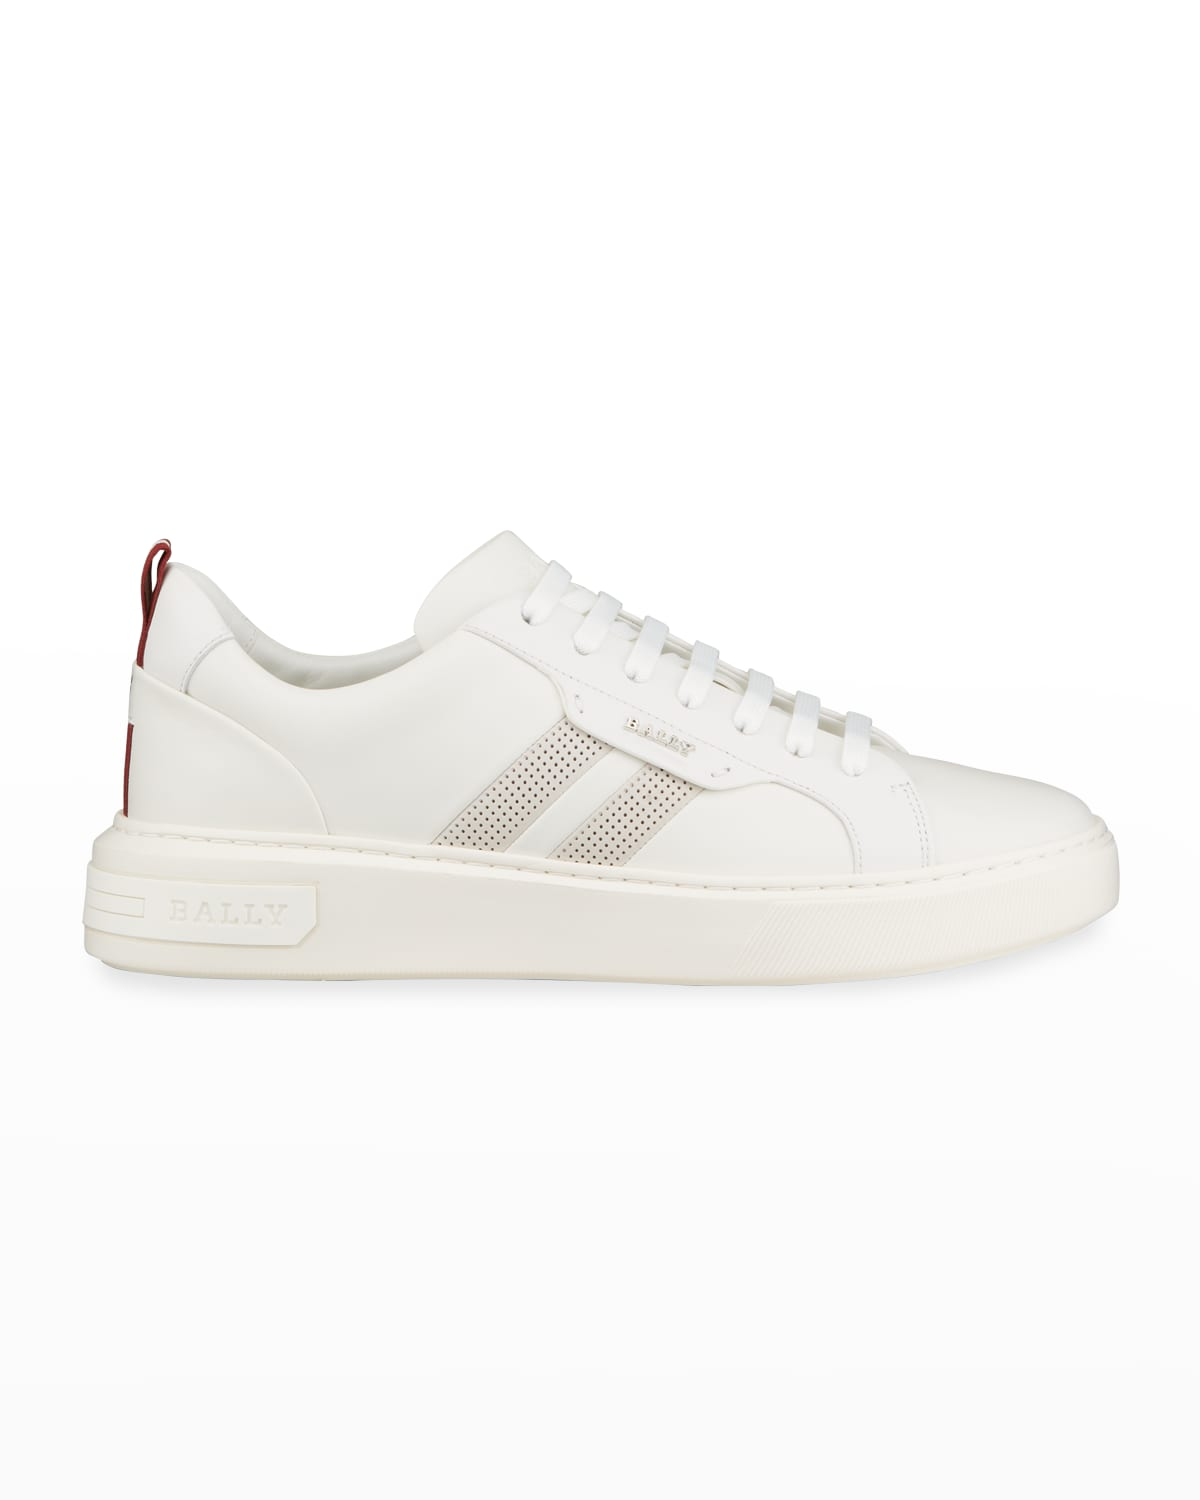 Men's Maxim 7 Striped Leather Low-Top Sneakers